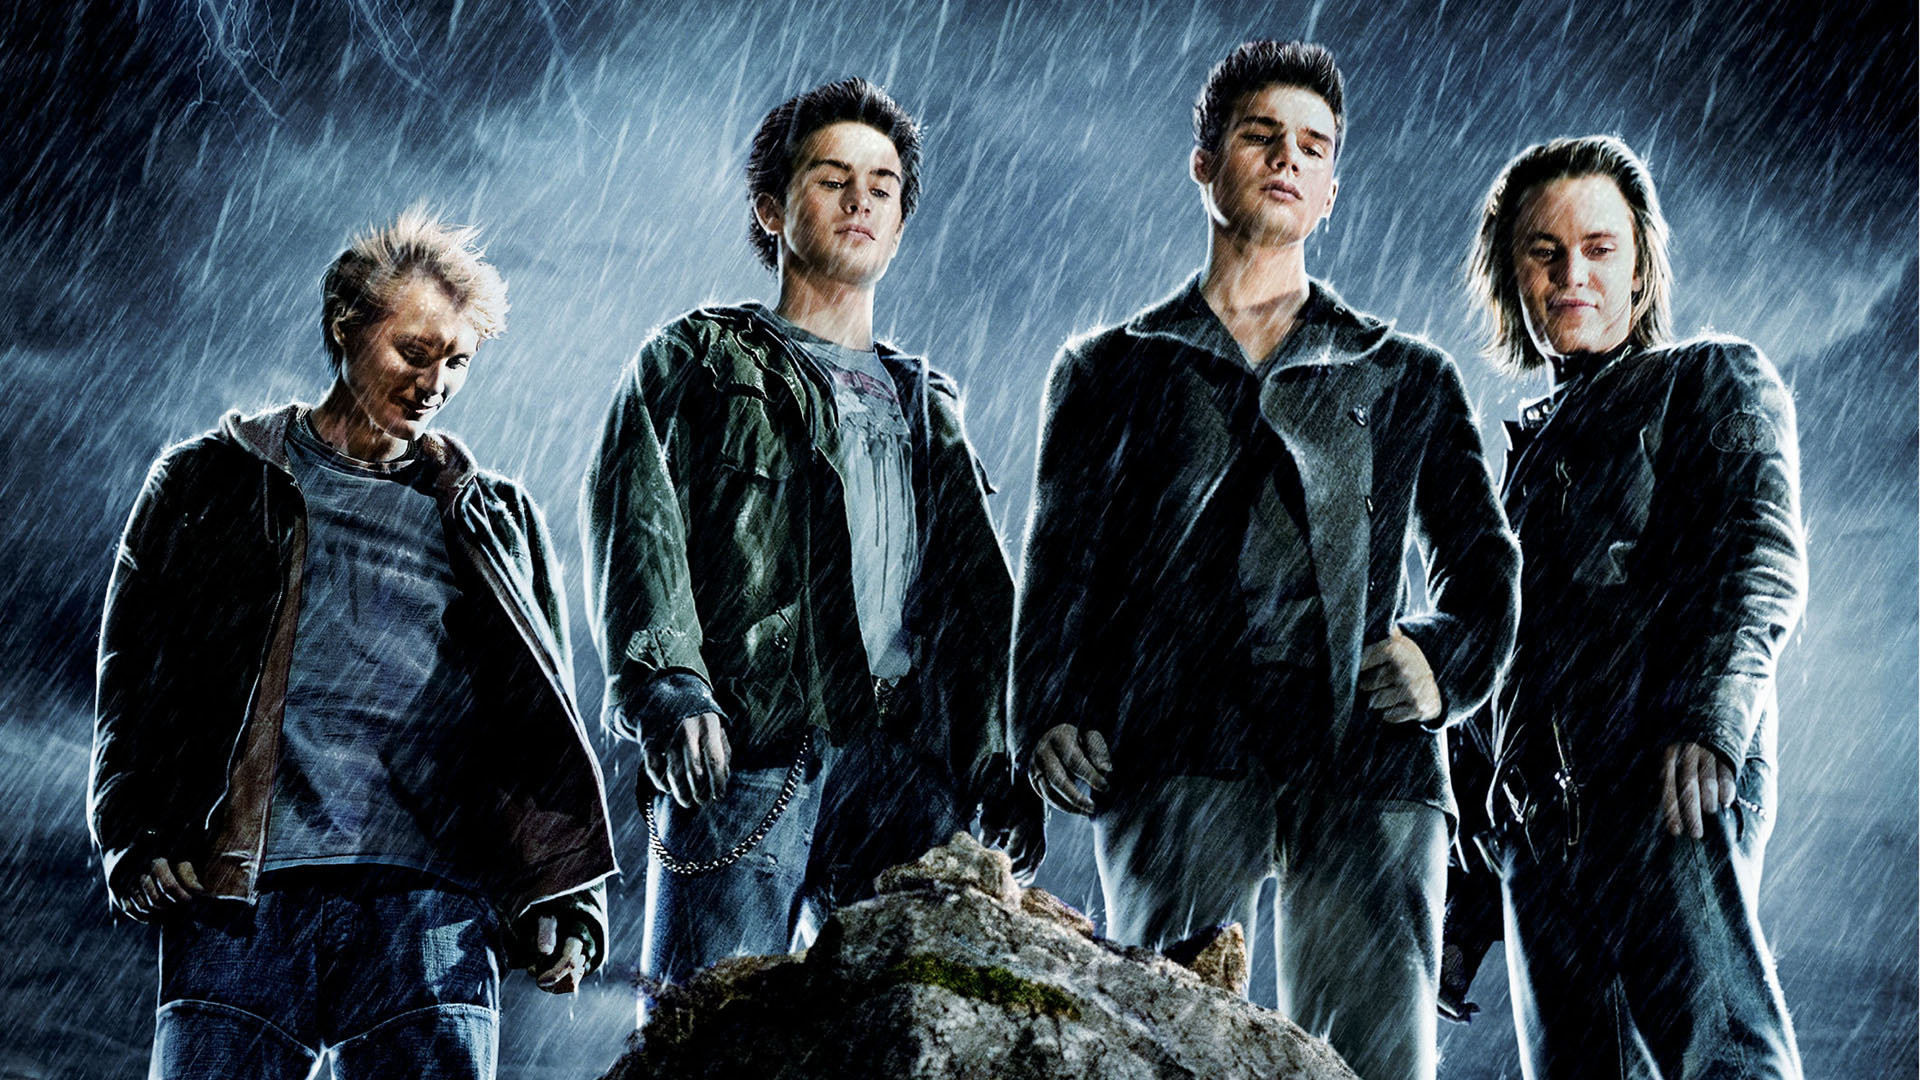 The covenant pic 40